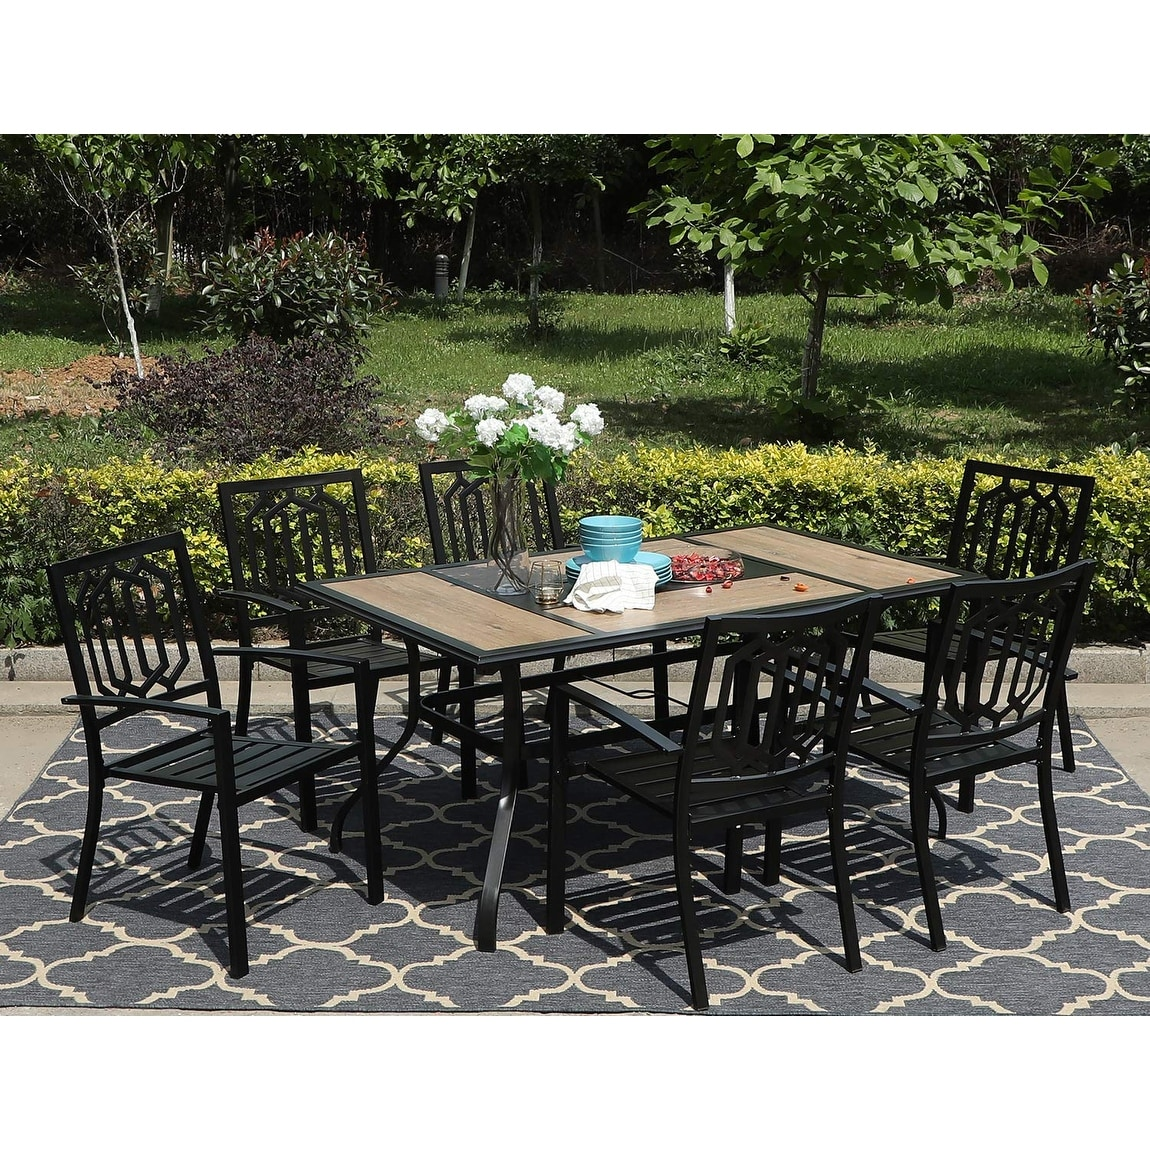 Sophia & William 100 Pieces Patio Dining Set Steel Outdoor Furniture Set with  100 Steel Garden Chairs and 10 Patio Umbrella Table